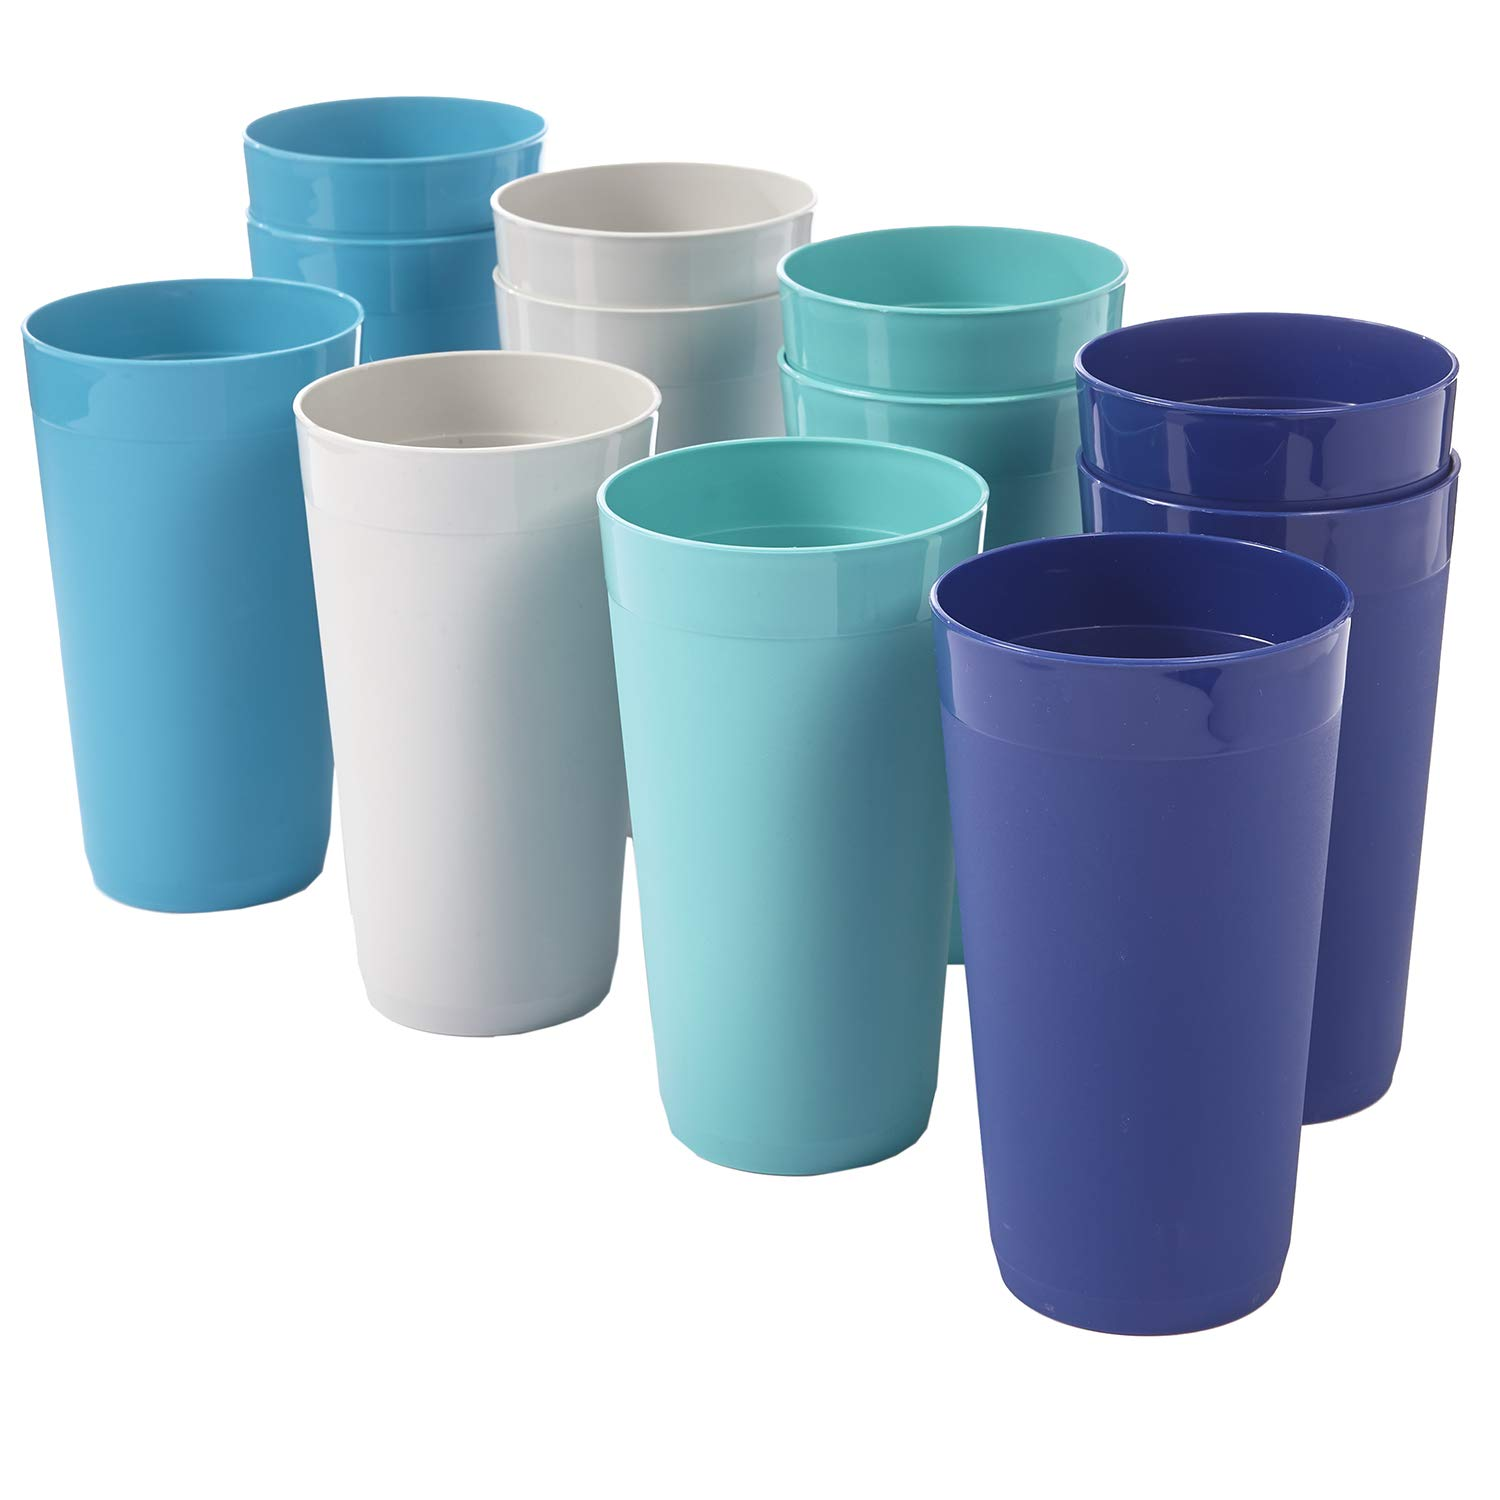 Newport 20-ounce Unbreakable Plastic Tumblers | set of 12 in 4 Coastal Colors by US Acrylic